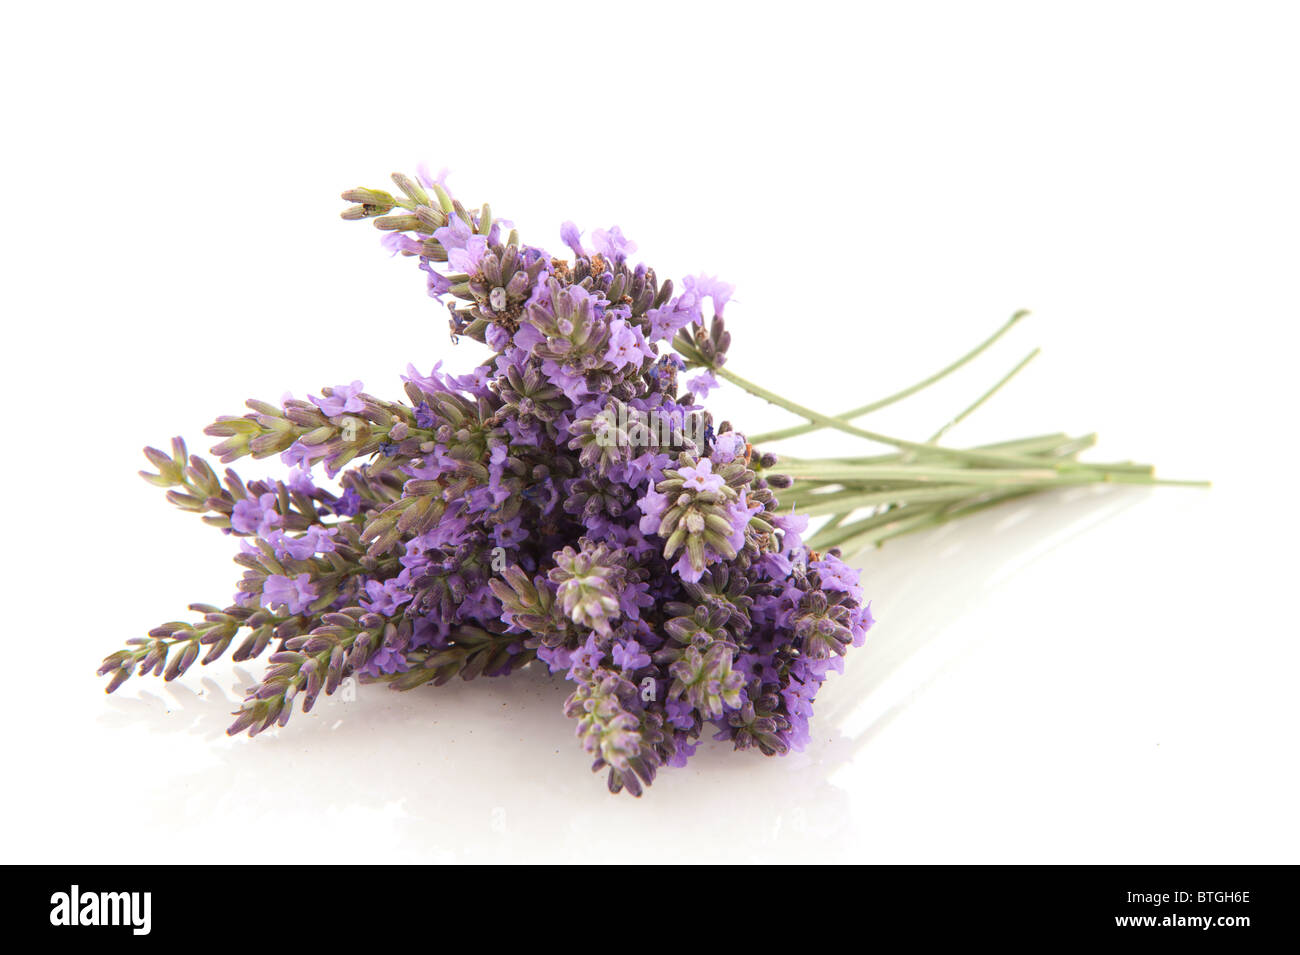 Bouquet purple Lavender flowers isolated over white - Stock Image